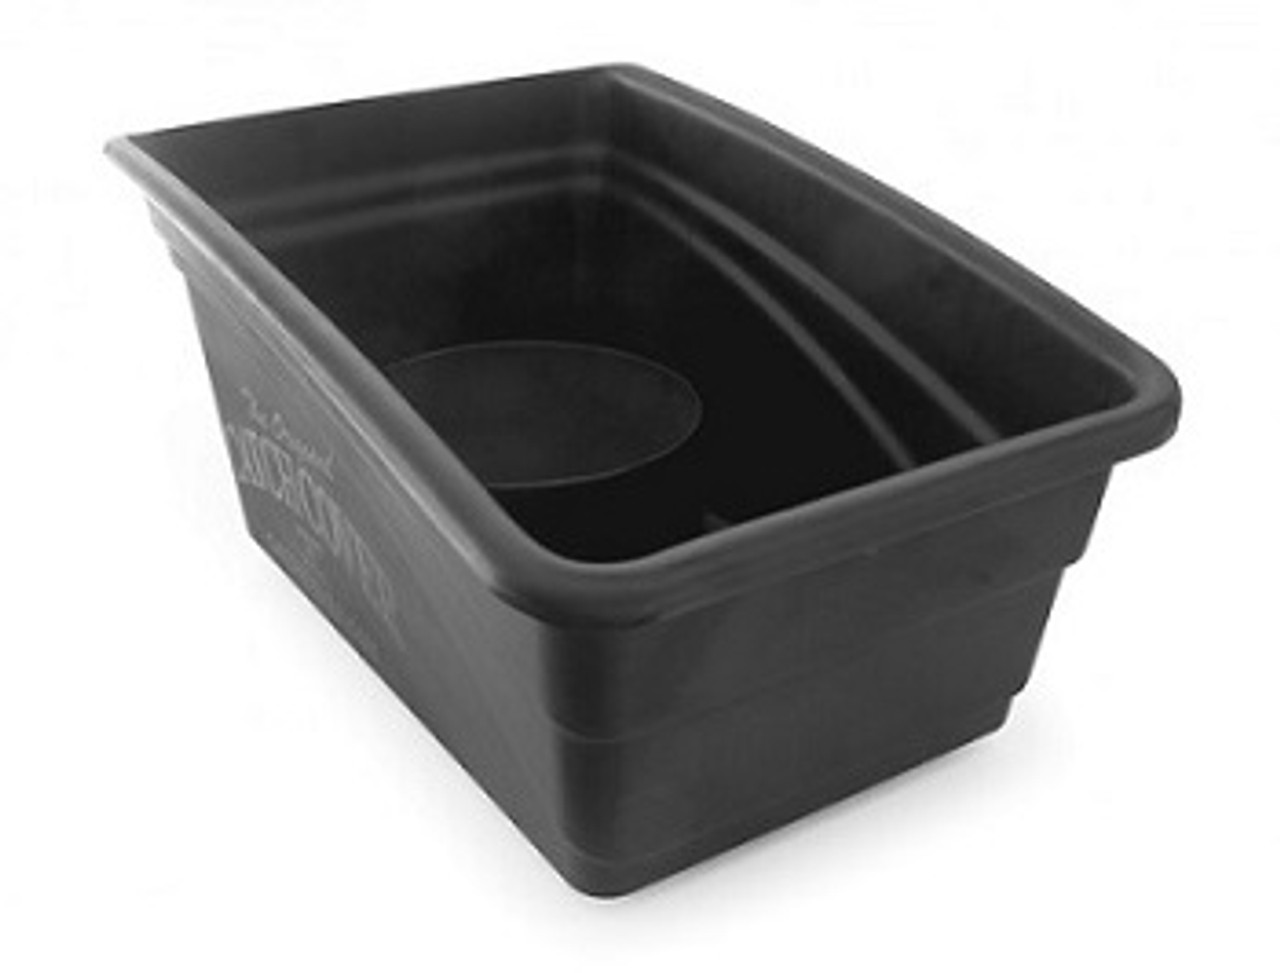 Catch Cover Slush Buckets Keeps your Ice Fishing House floors clean and dry